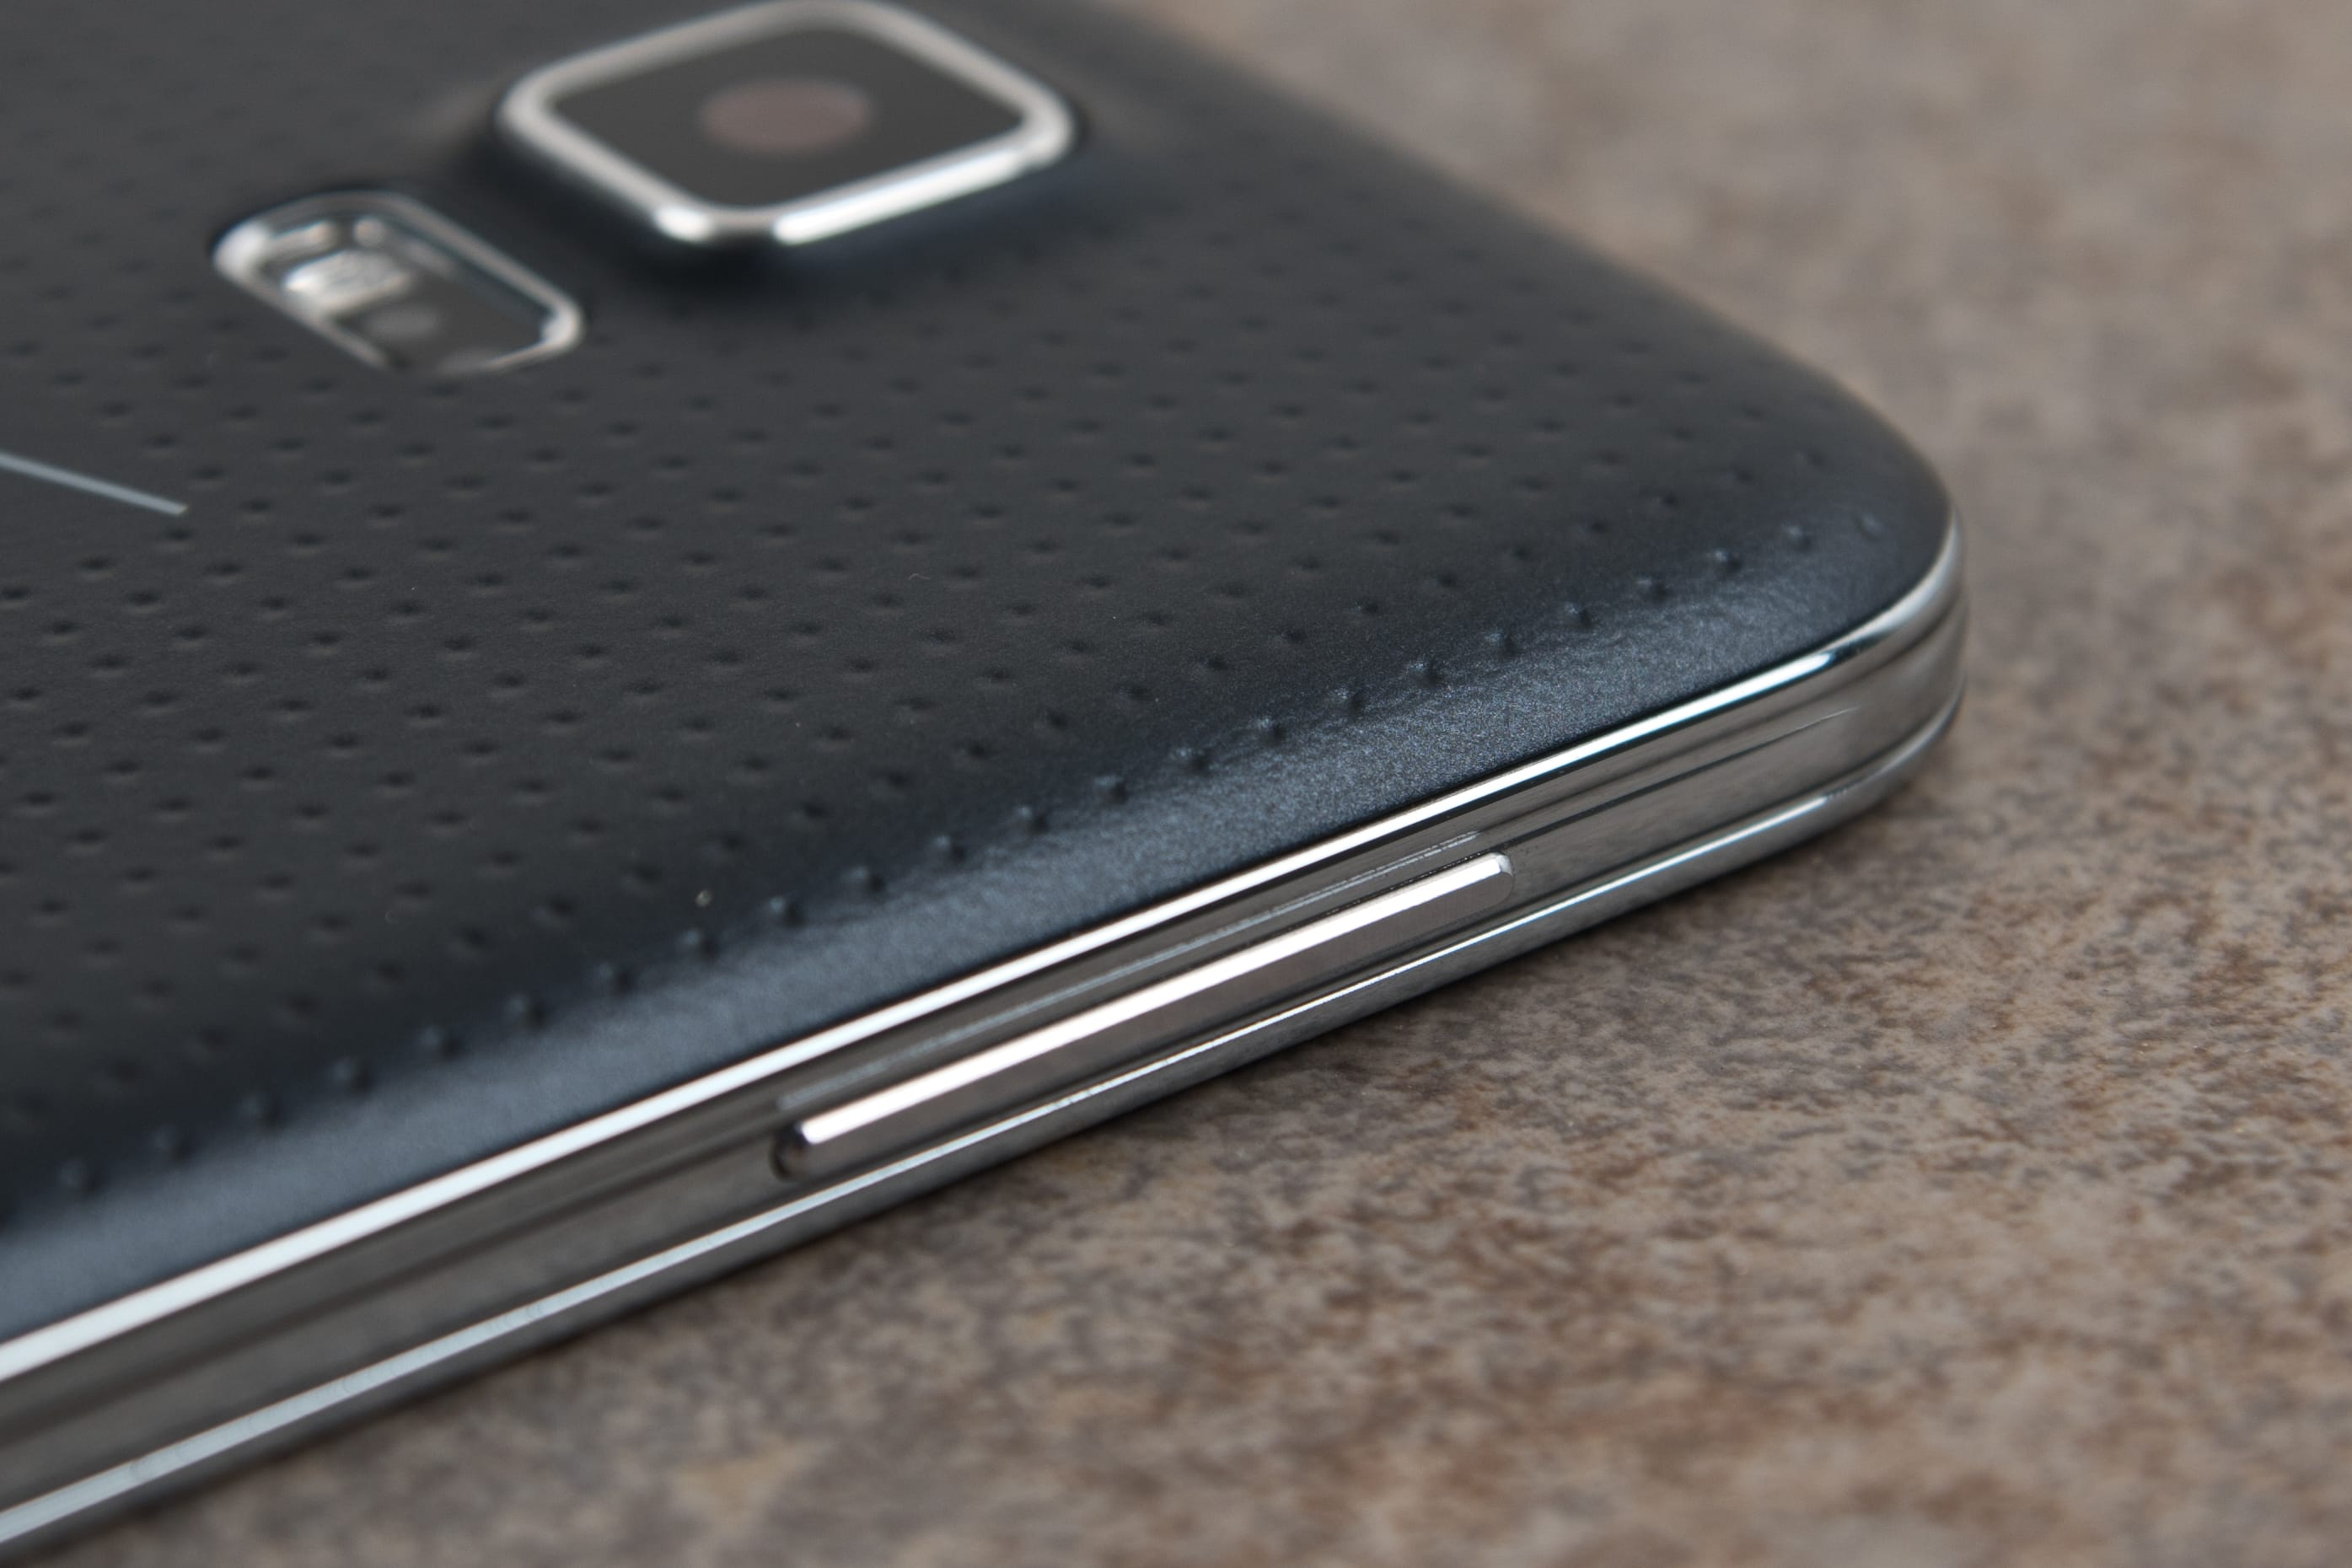 A picture of the Samsung Galaxy S5's volume rocker.